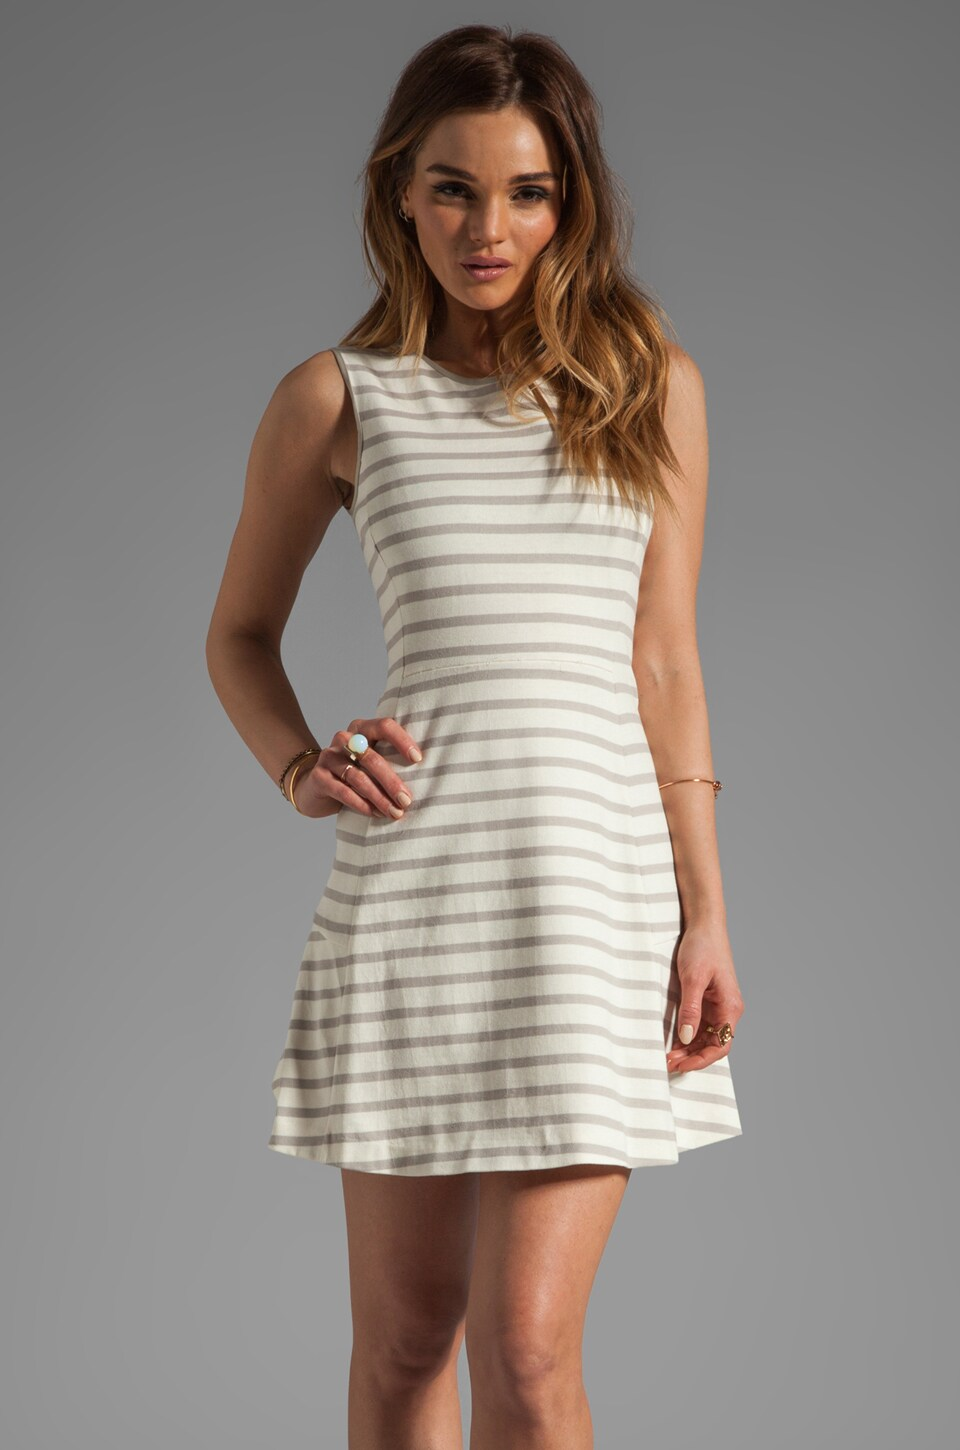 Theory Nyos Nikay B Striped Dress in Ivory/Warm Pebble